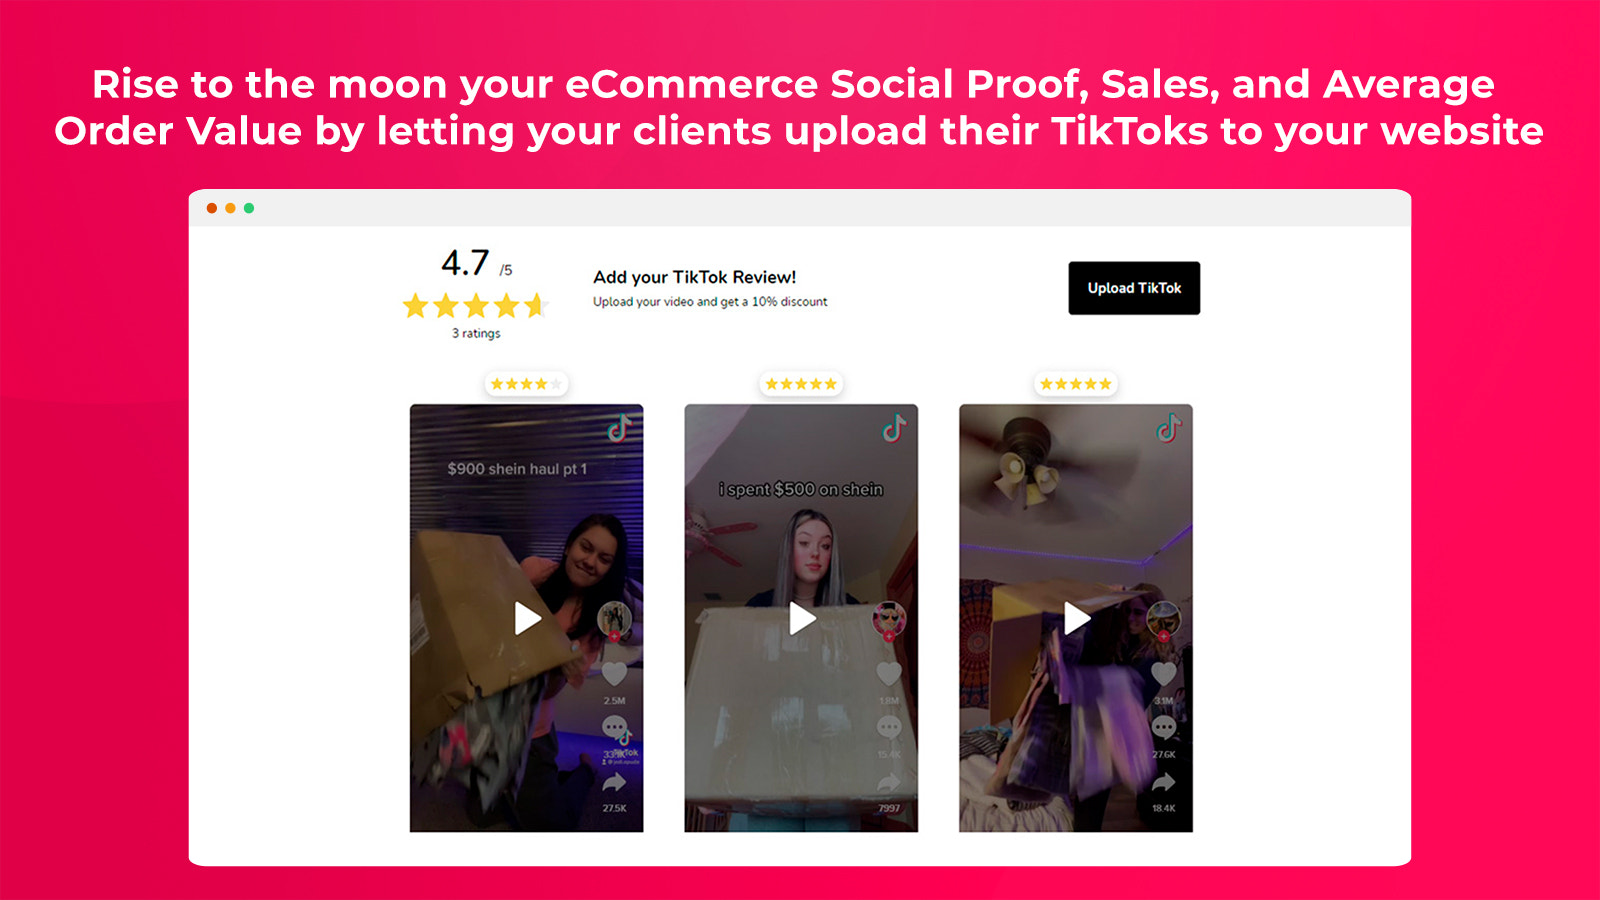 Rise your eCommerce Social Proof and Sales with tiktok reviews